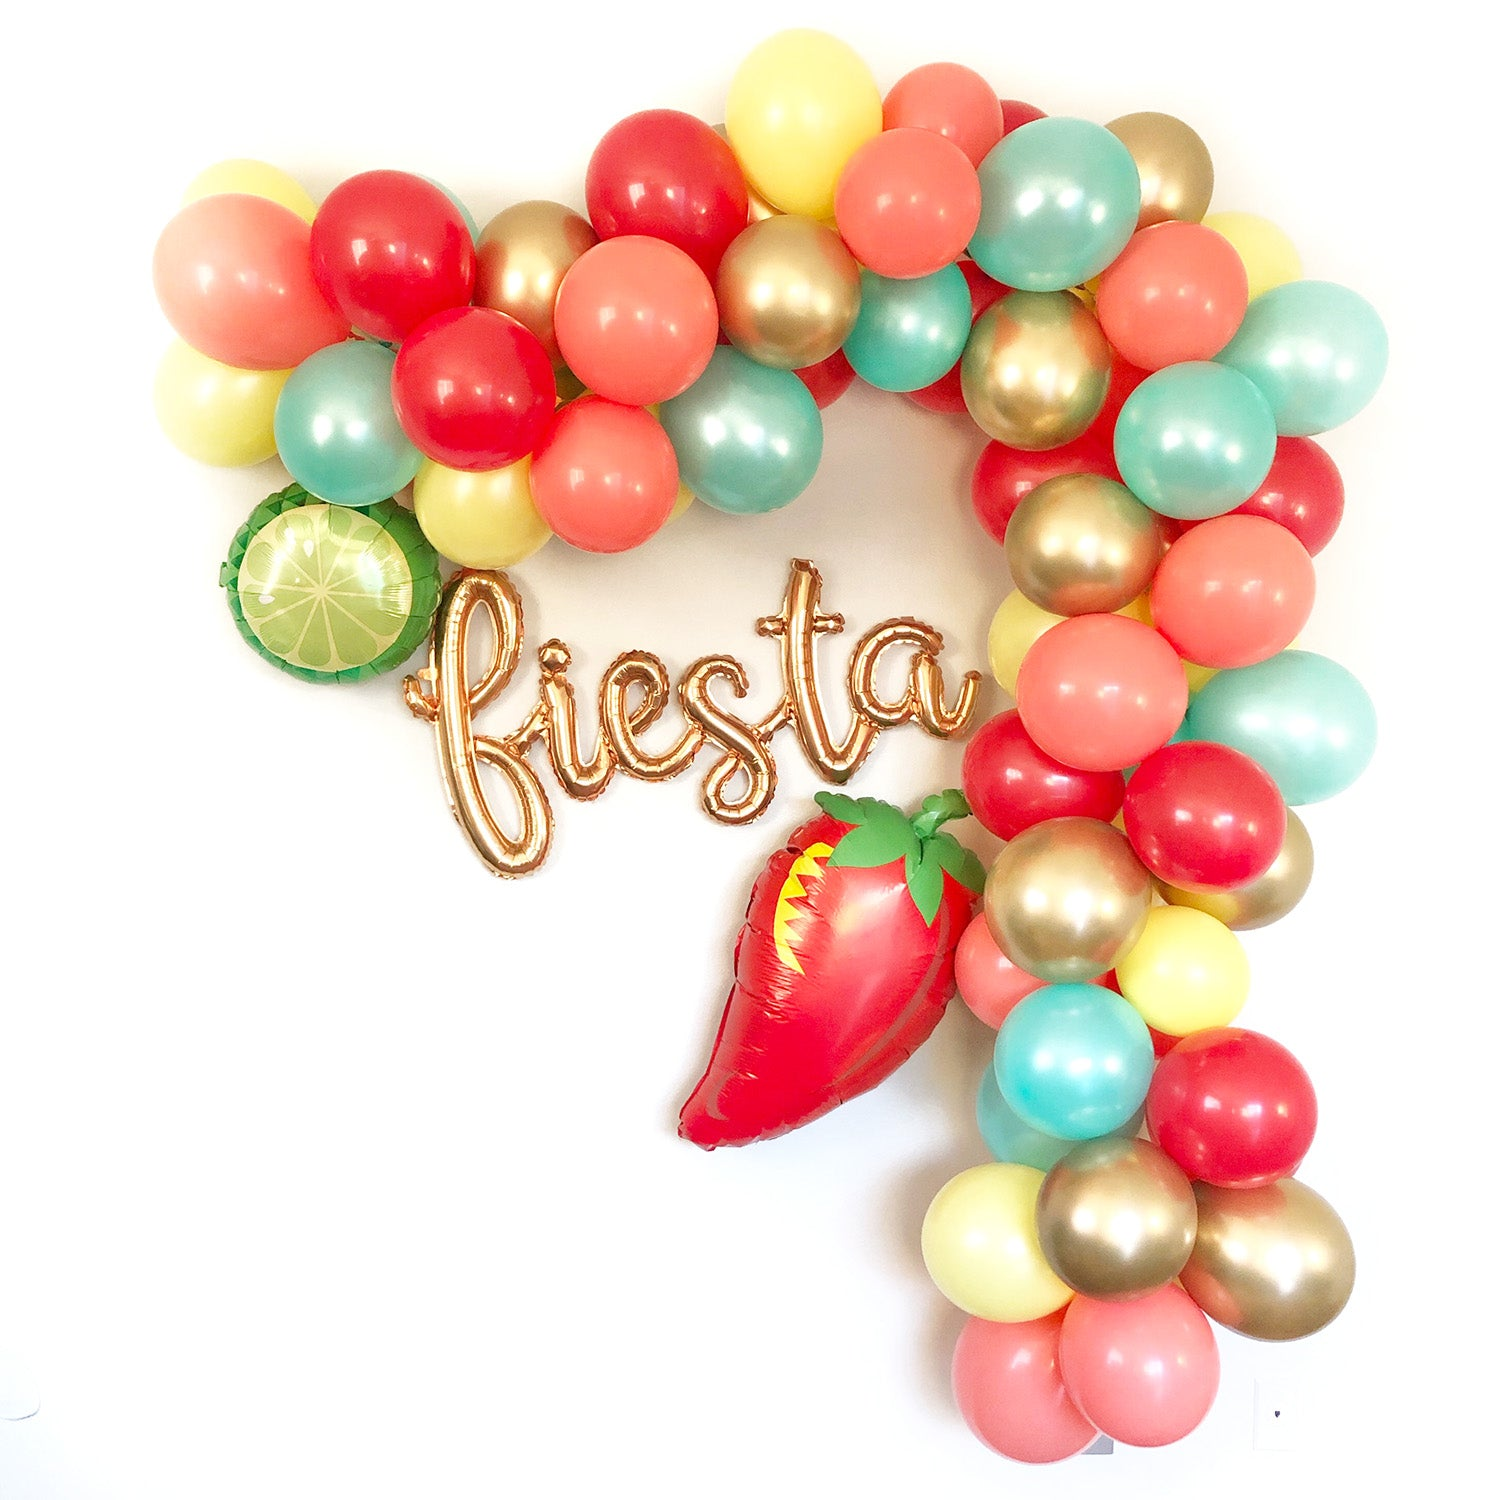 Fiesta Balloon Garland - Fiesta Shower Balloon Garland - Pretty Collected